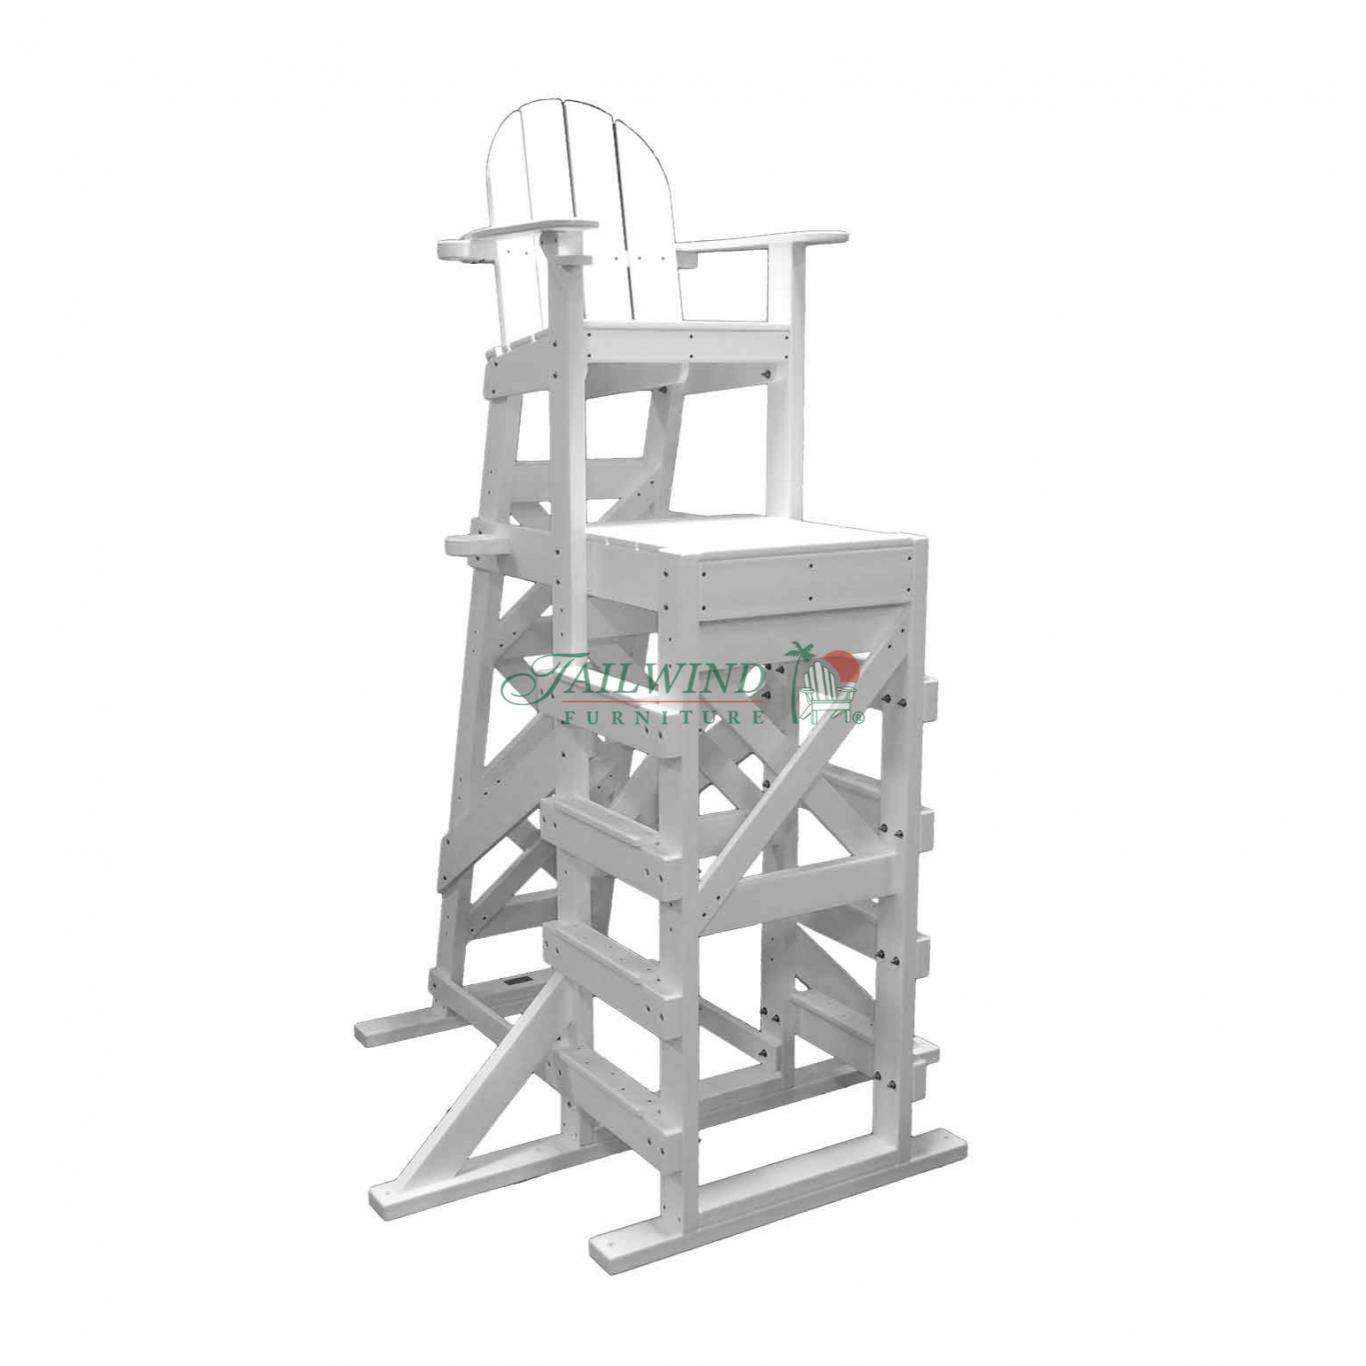 XTLG 540 Tall Lifeguard Chair (side step) - XTLG 540 Tall Lifeguard Chair (side step)